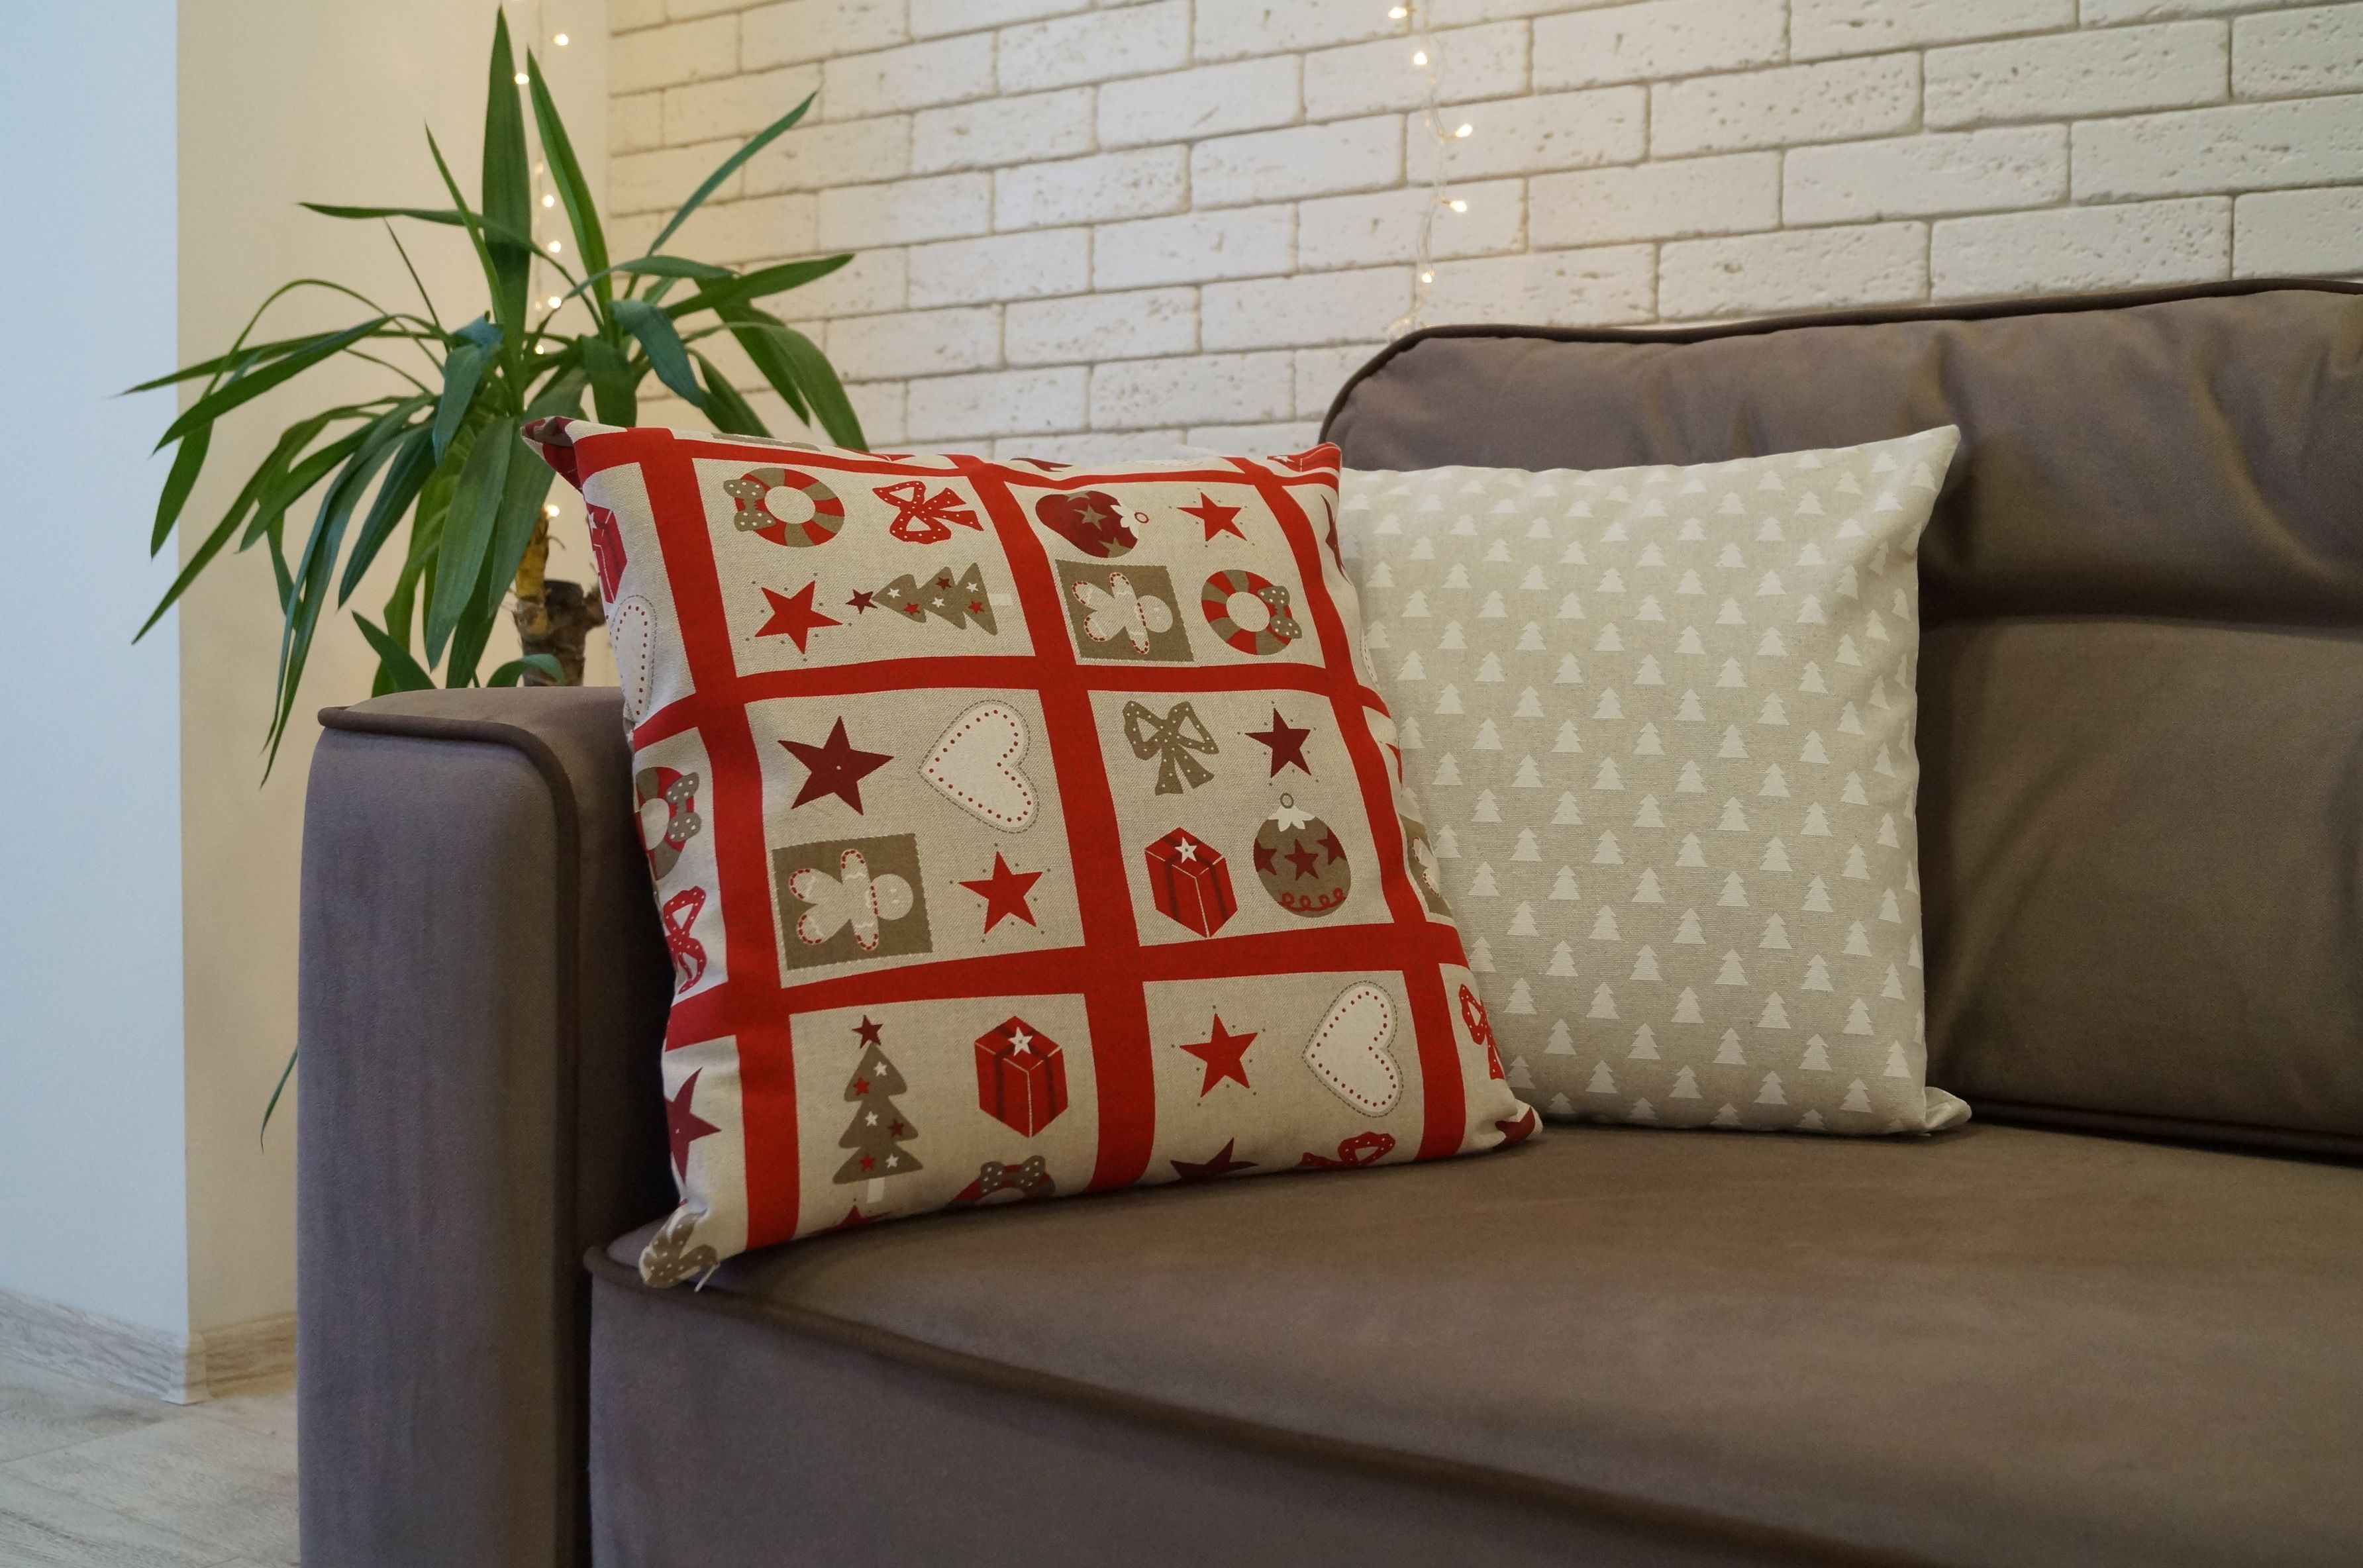 Dear friends dress up your home with holiday decor with our